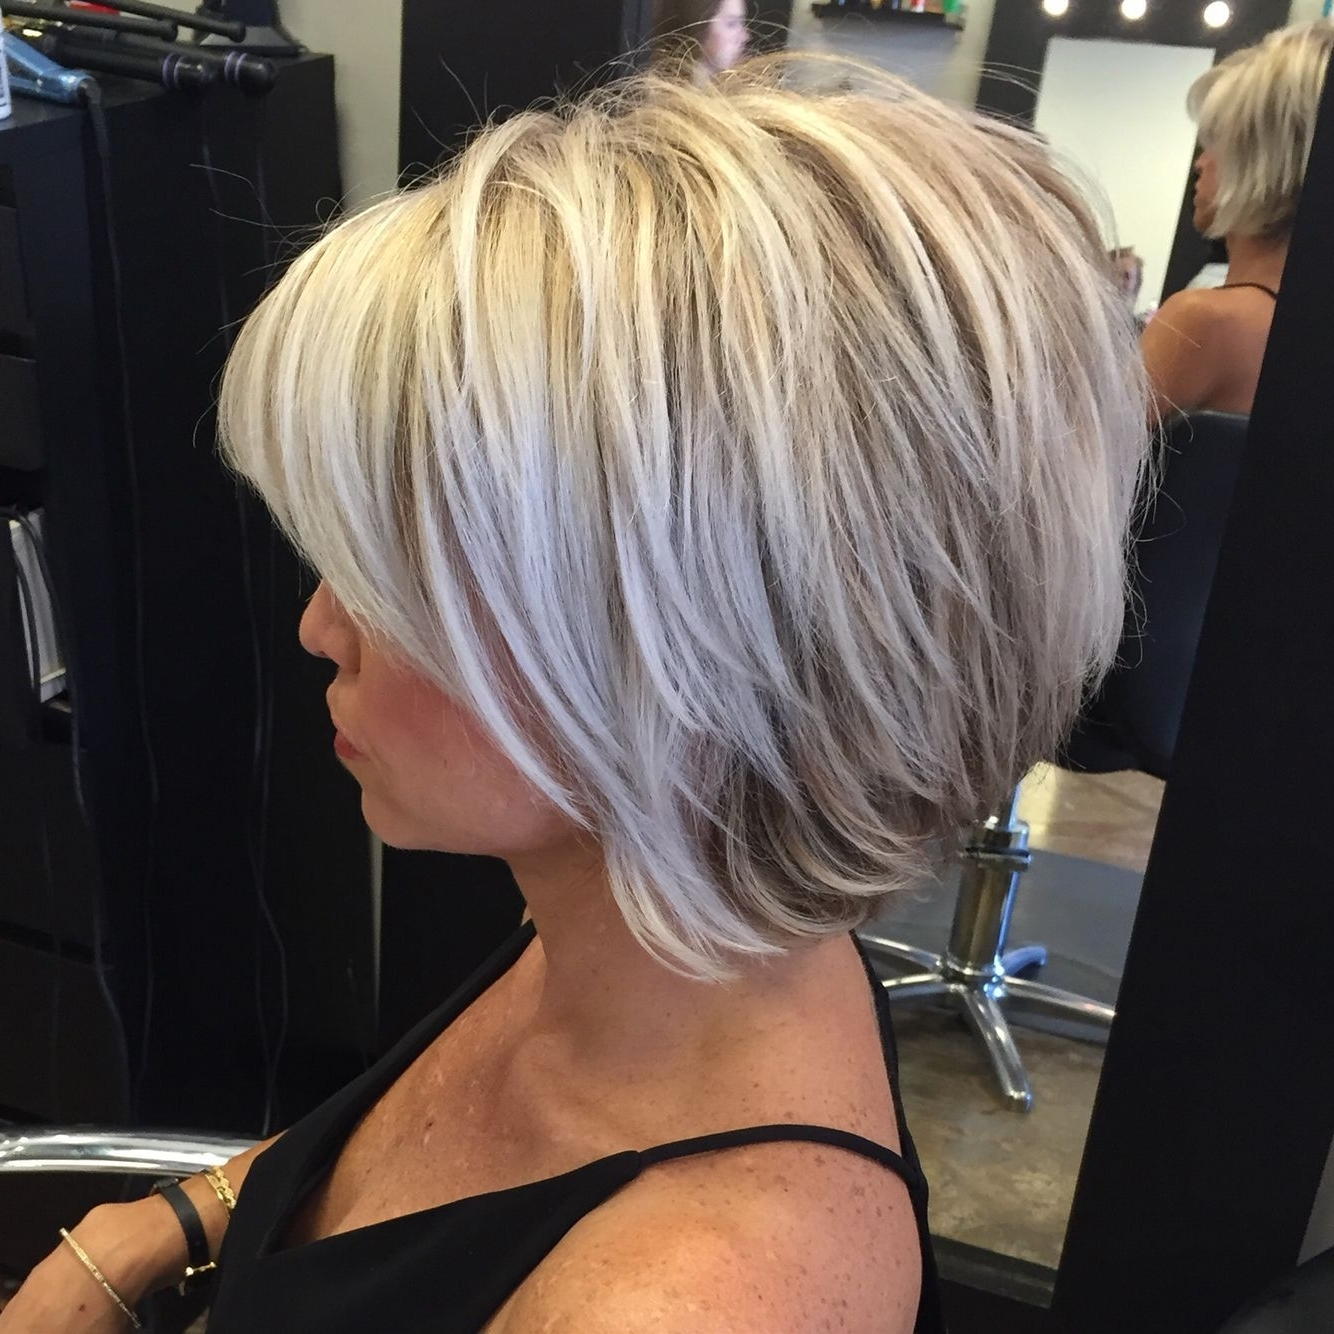 Latest Paper White Pixie Cut Blonde Hairstyles For 50 Short Bob Hairstyles 2015 –  (View 10 of 20)